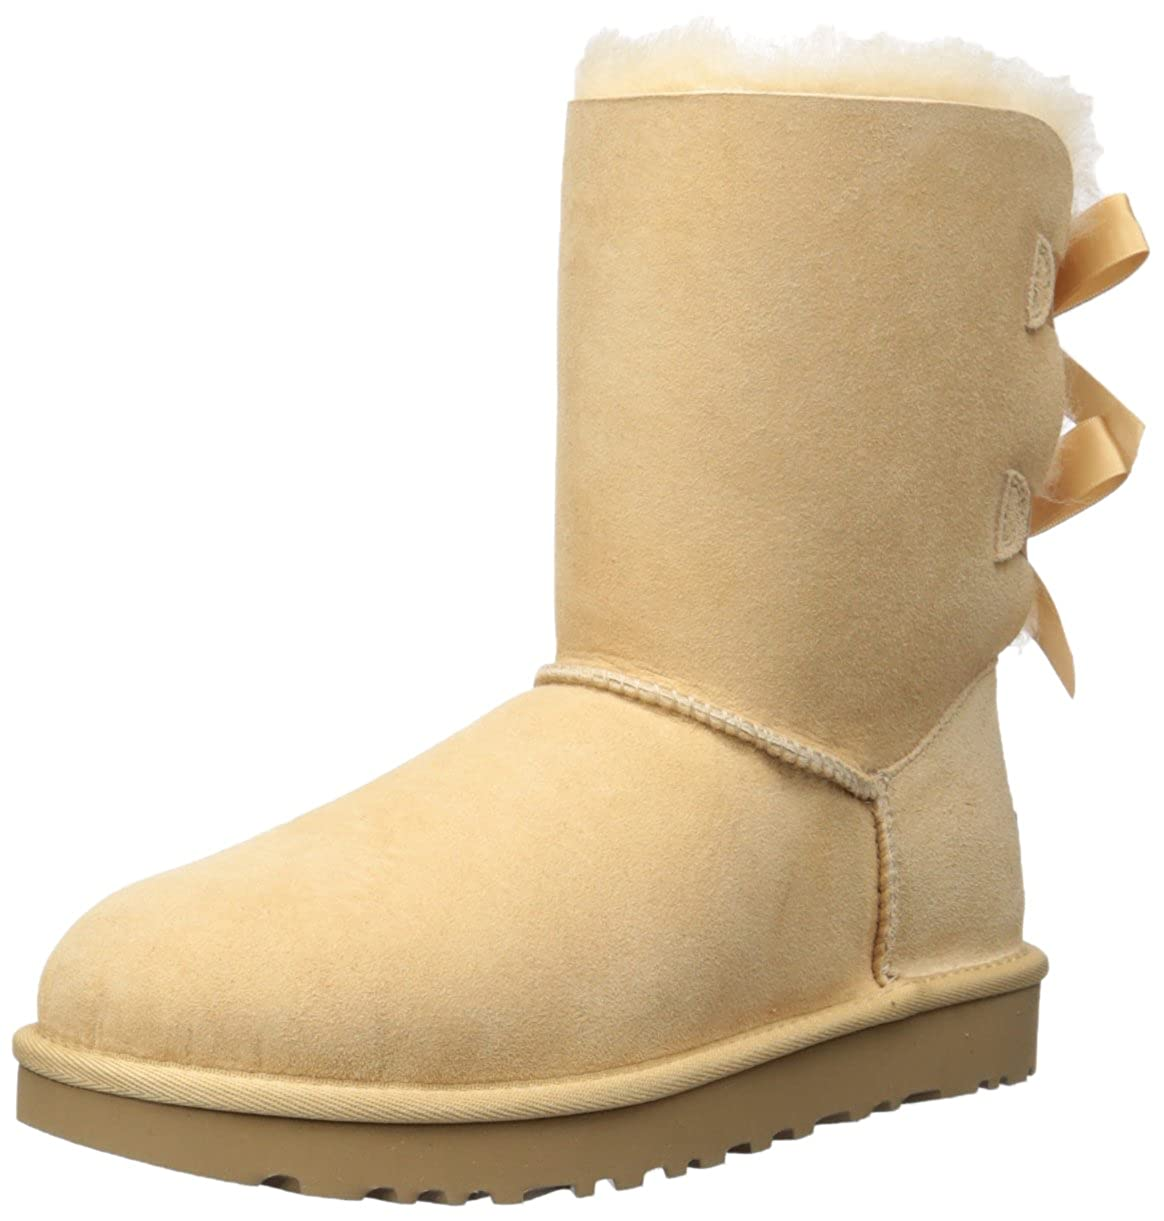 fce08211b2a UGG Women's Bailey Bow II Fashion Boot, Soft Ochre, 7 M US